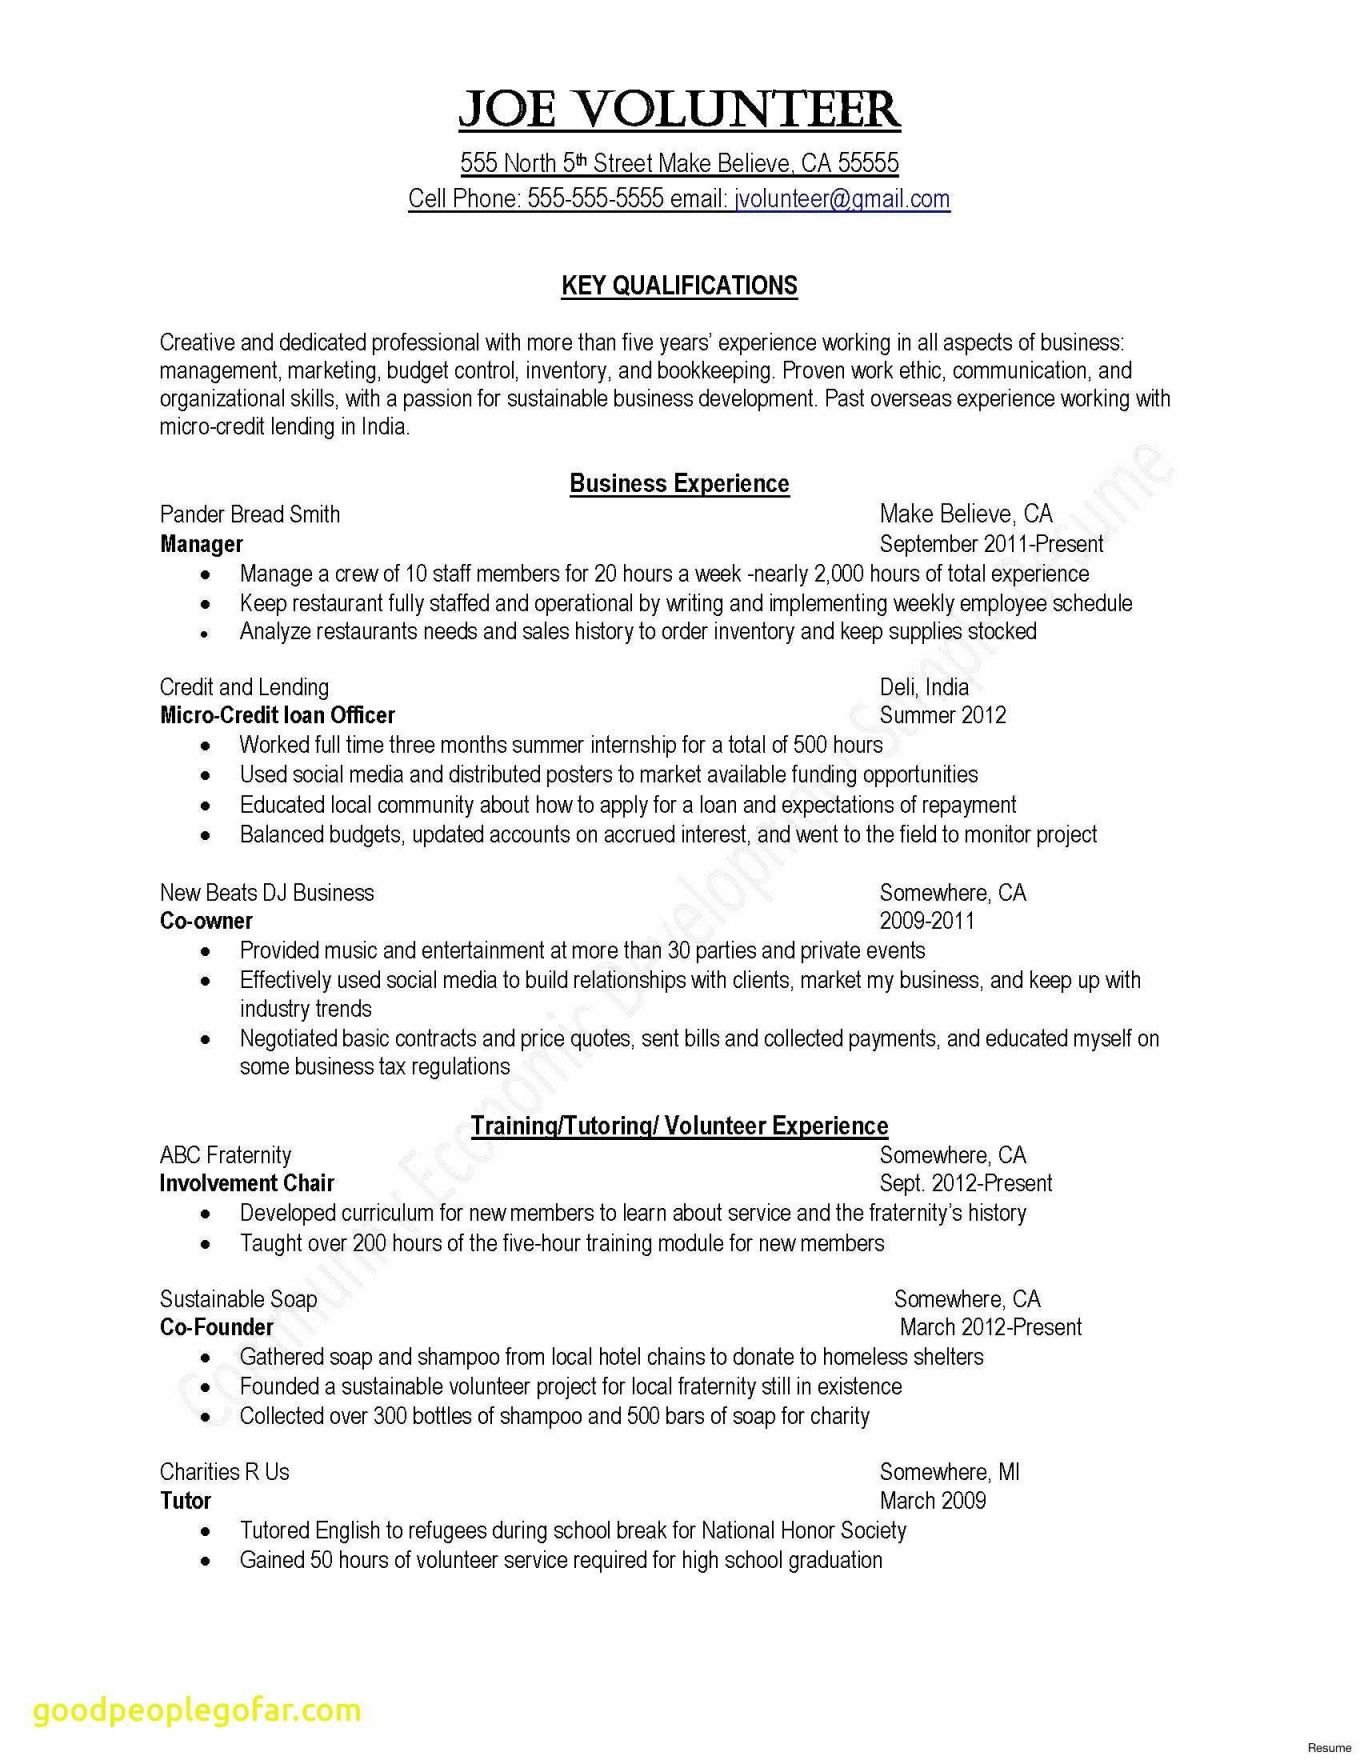 28 Elegant Museum Of Science And Industry Field Trip Worksheets With Regard To Museum Of Science And Industry Field Trip Worksheets